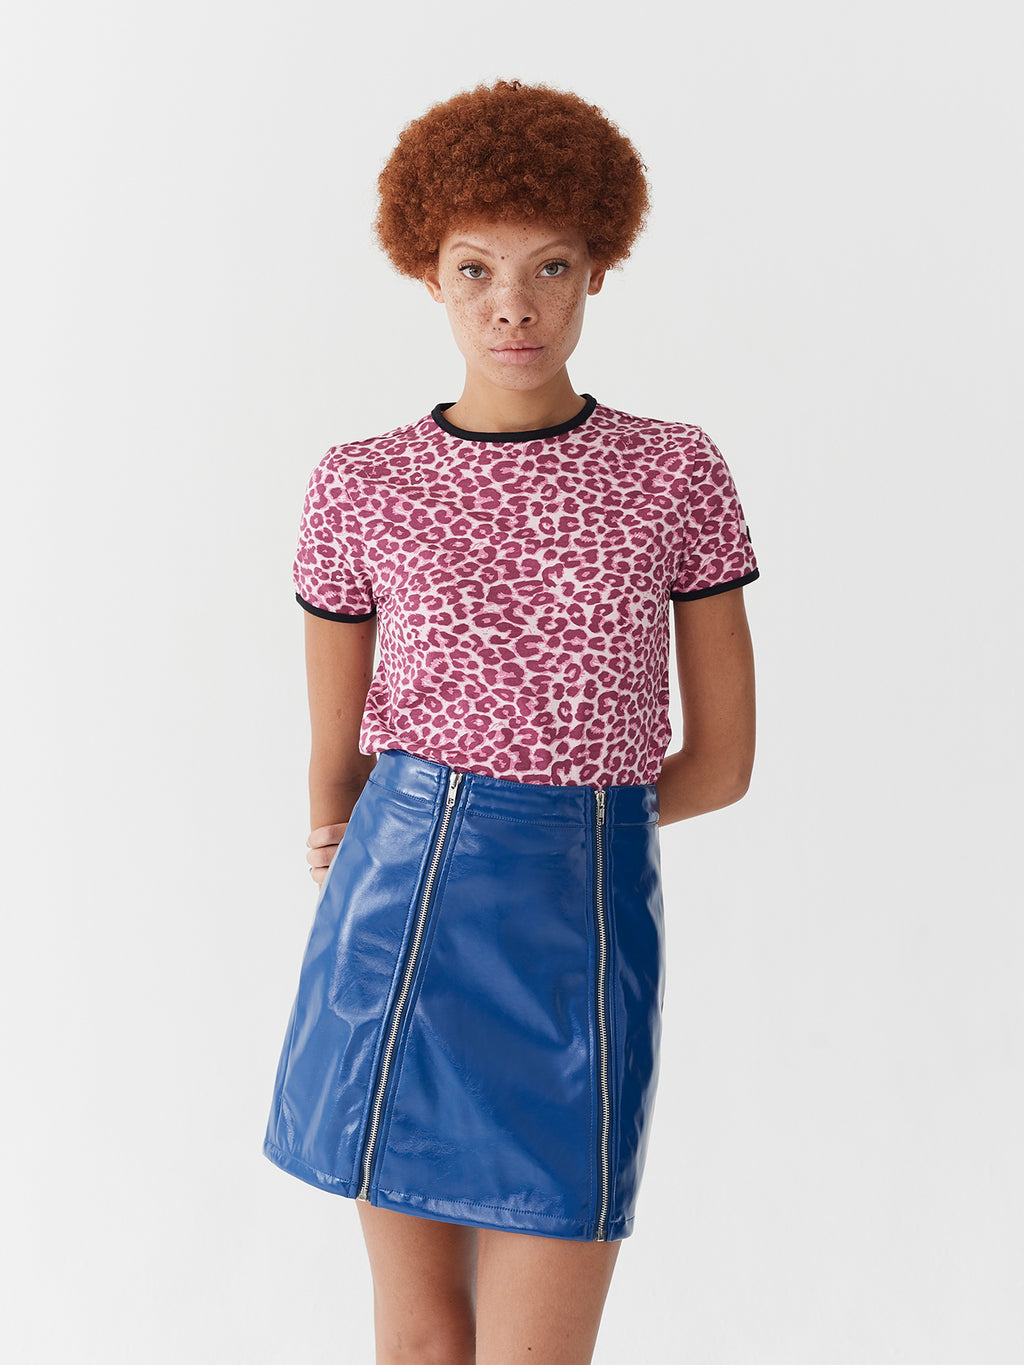 Lazy Oaf Pink Leopard Fitted T-Shirt